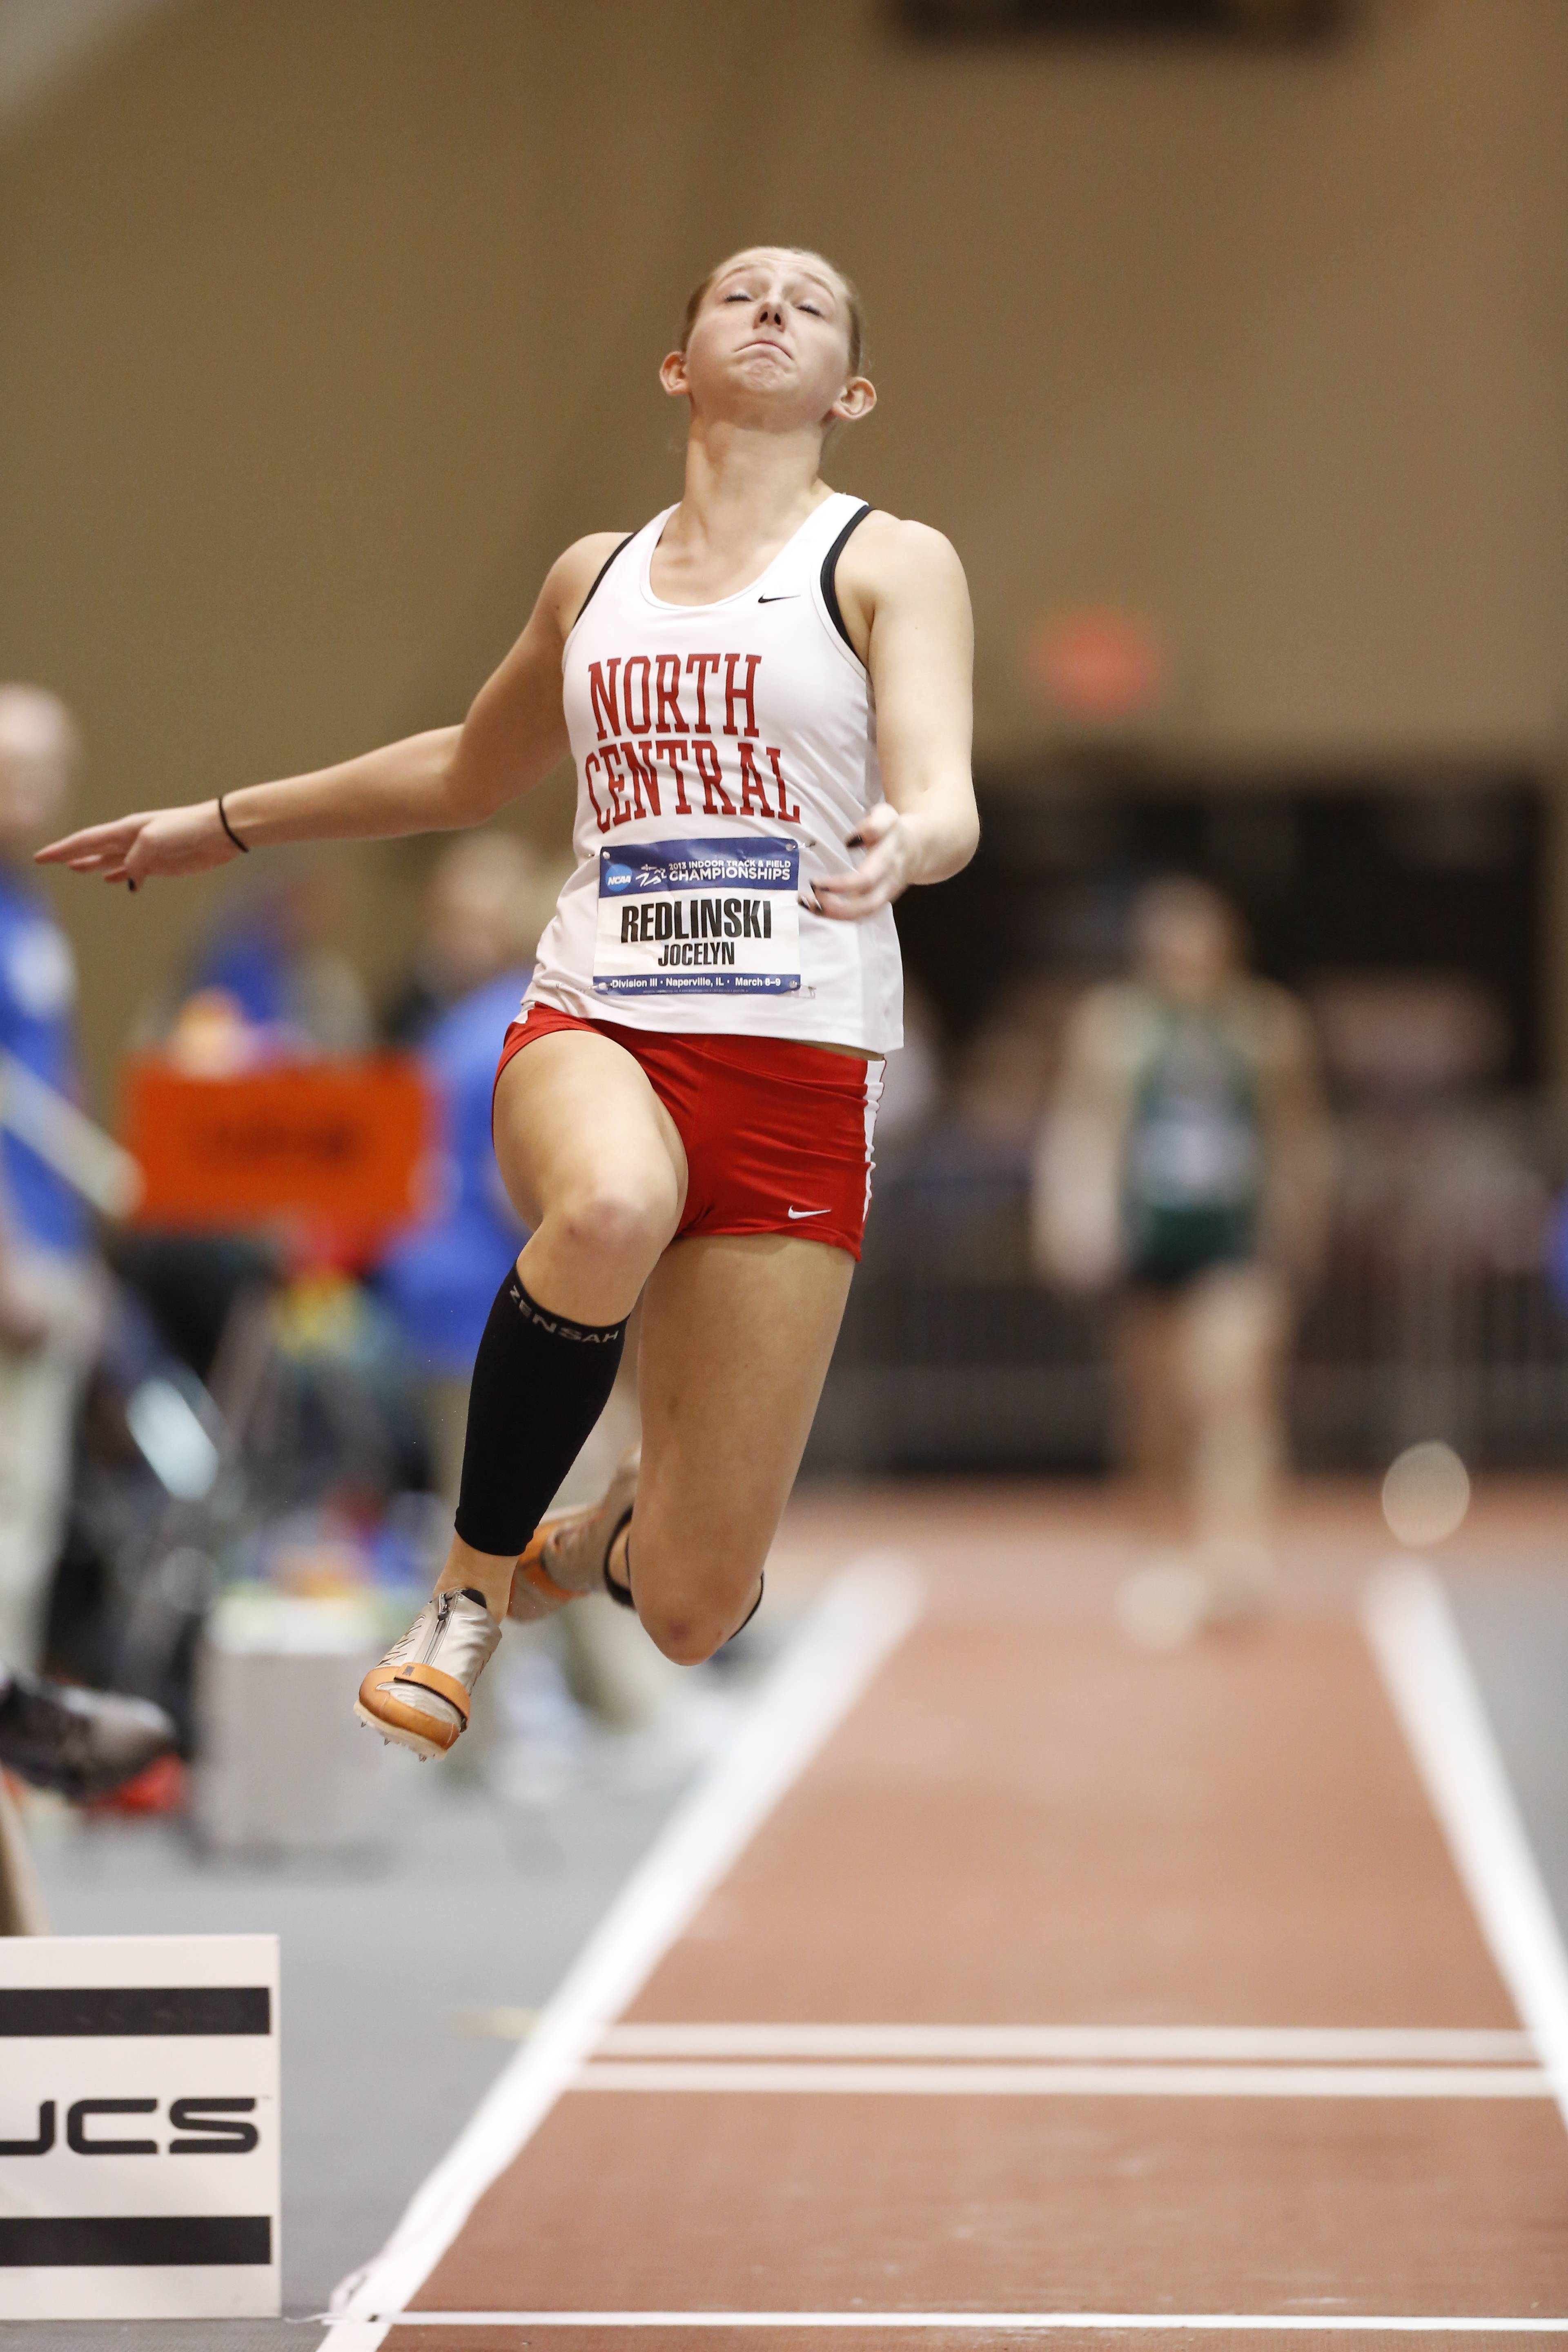 Jocelyn Redlinski competing in the 2013 NCAA Division III Indoor Track & Field Championships at Al B. Carius Track in Naperville.Steve Woltmann